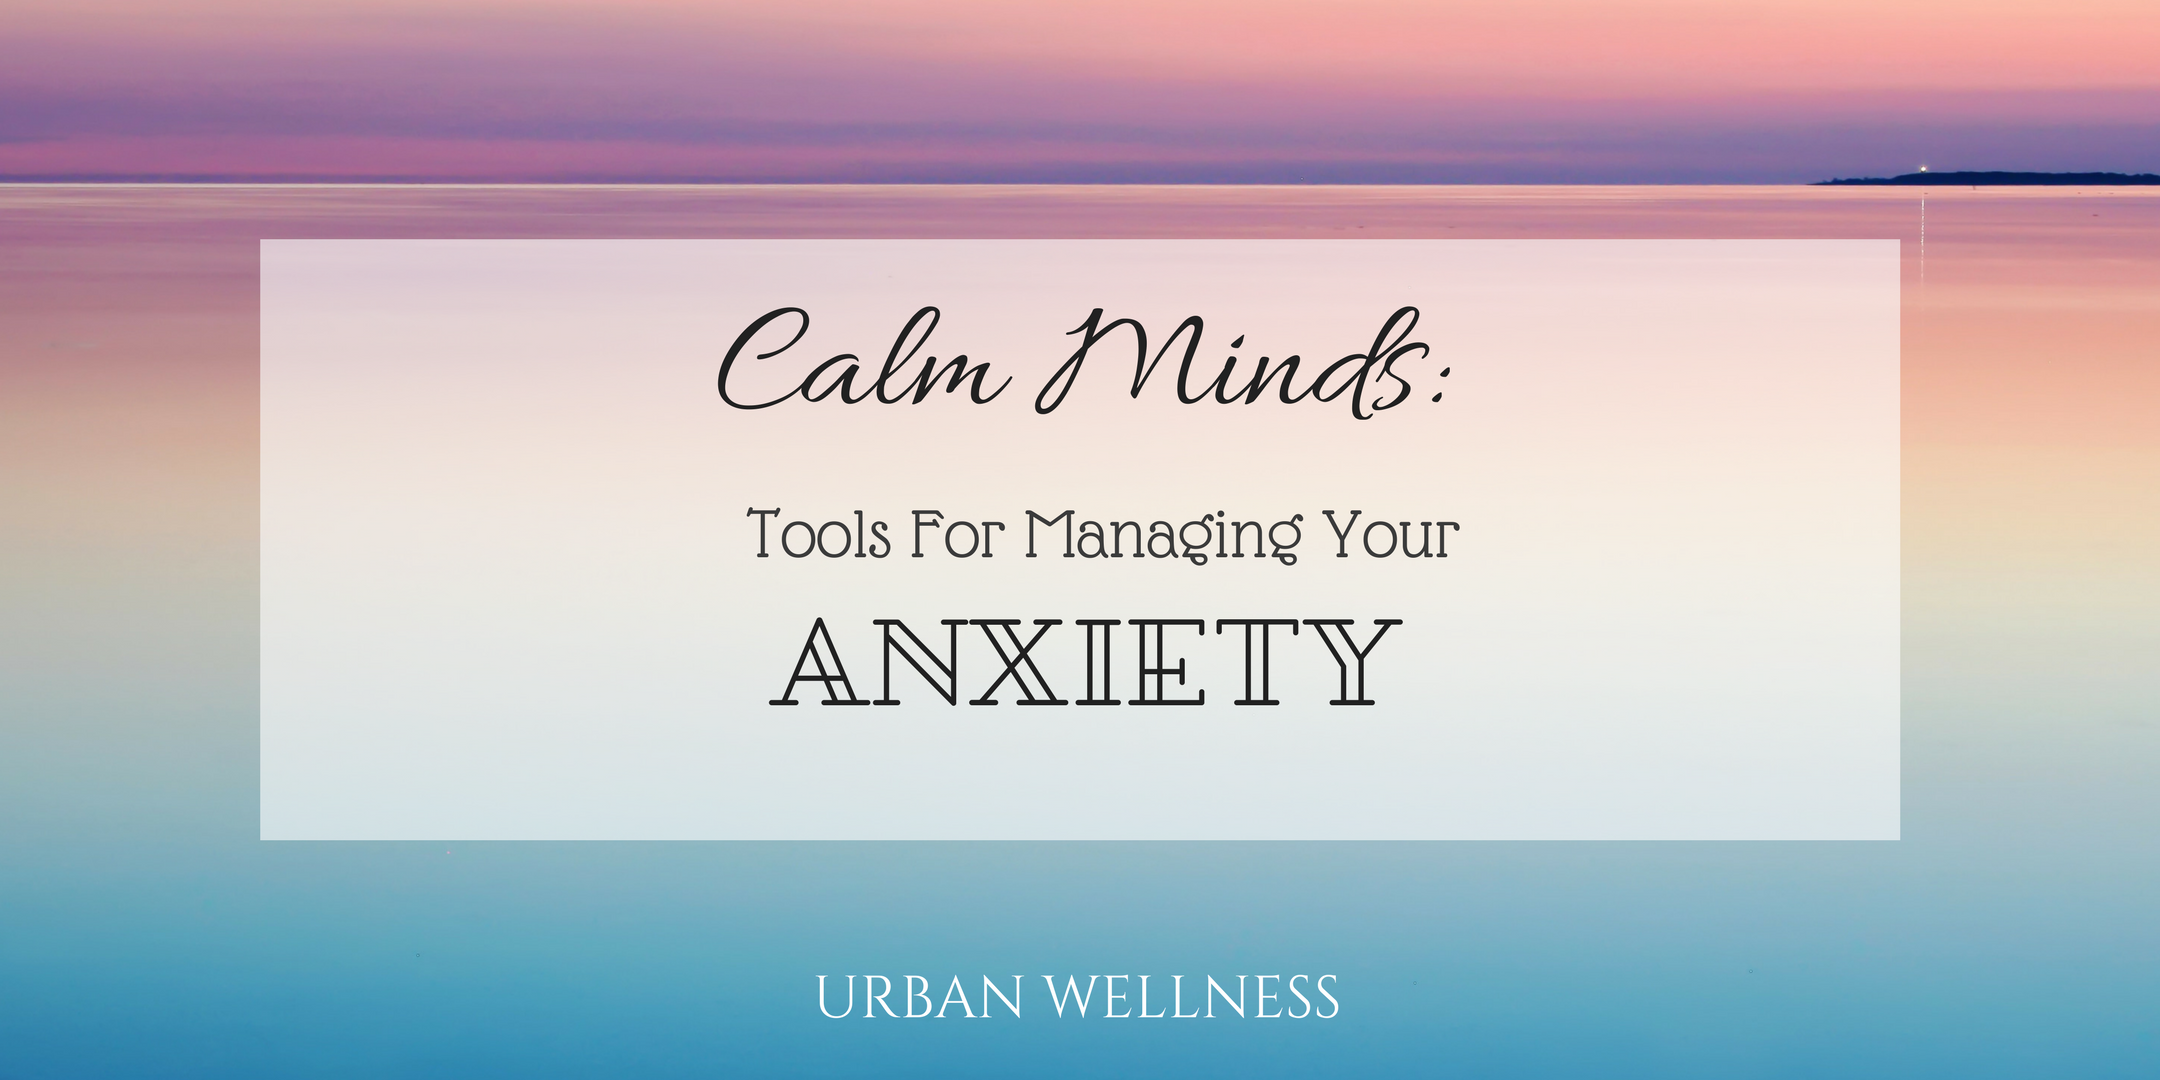 Calm Minds: Tools For Managing Your Anxiety